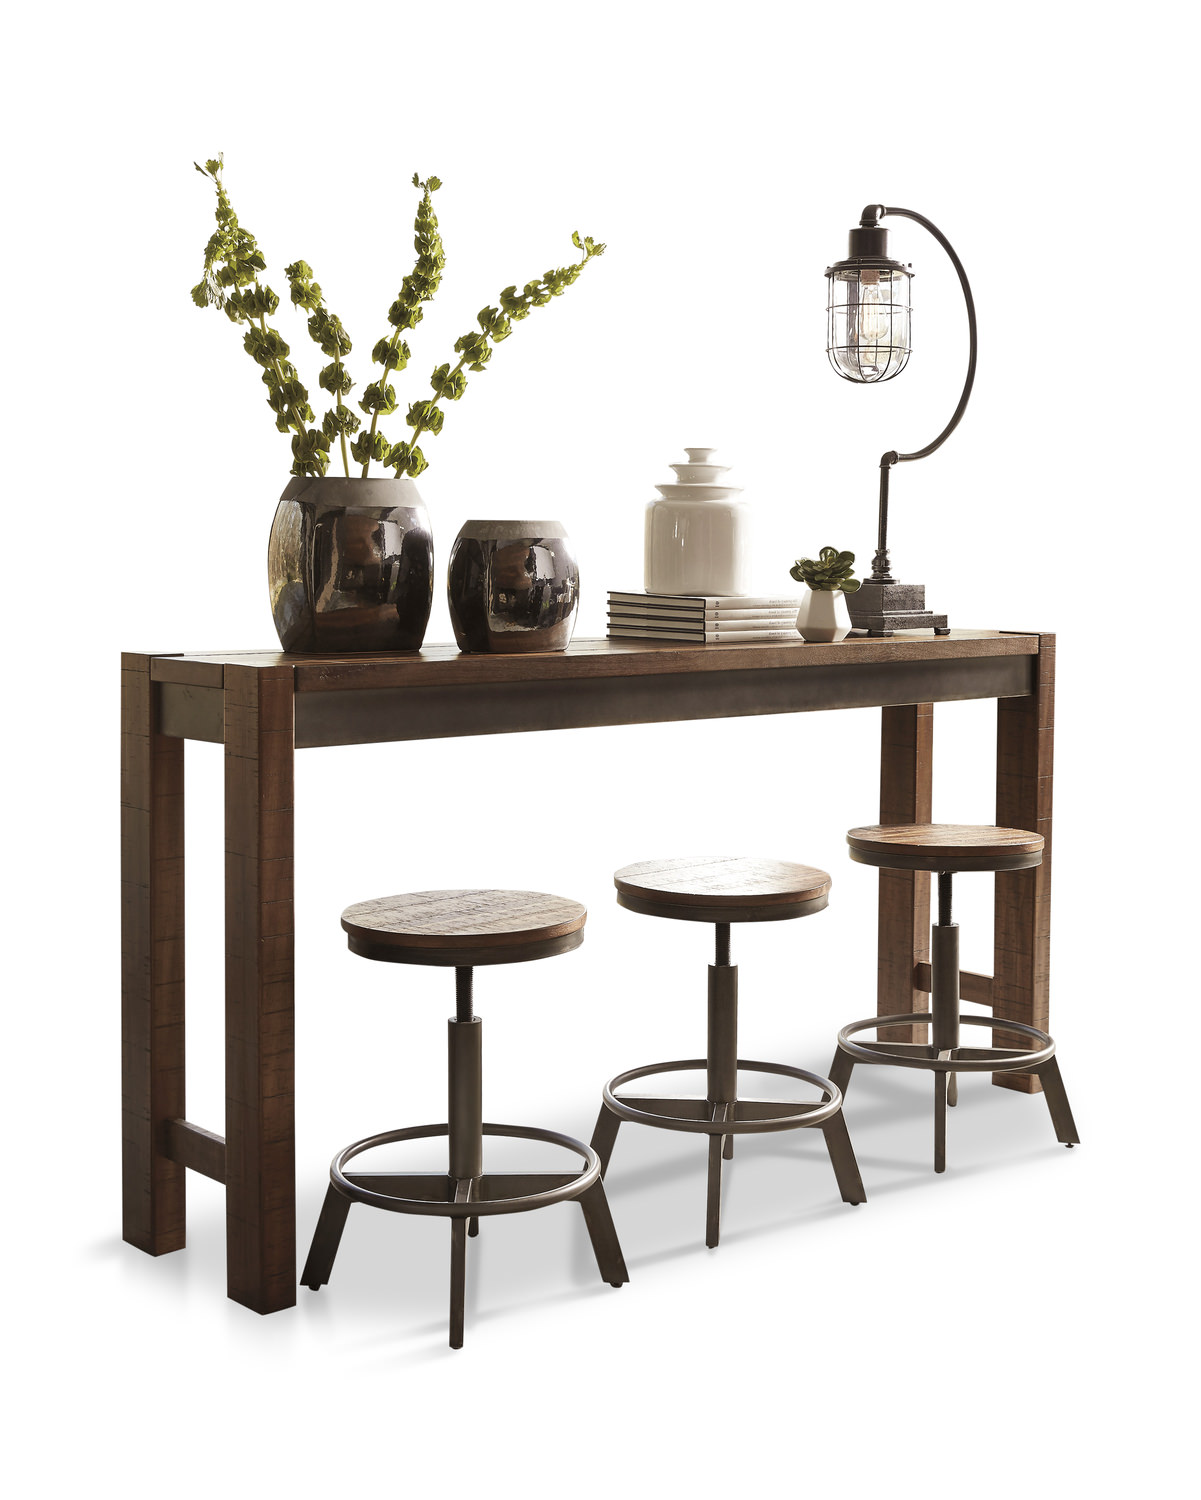 Console Table With Stools ~ Torjin xl sofa table with stools hom furniture